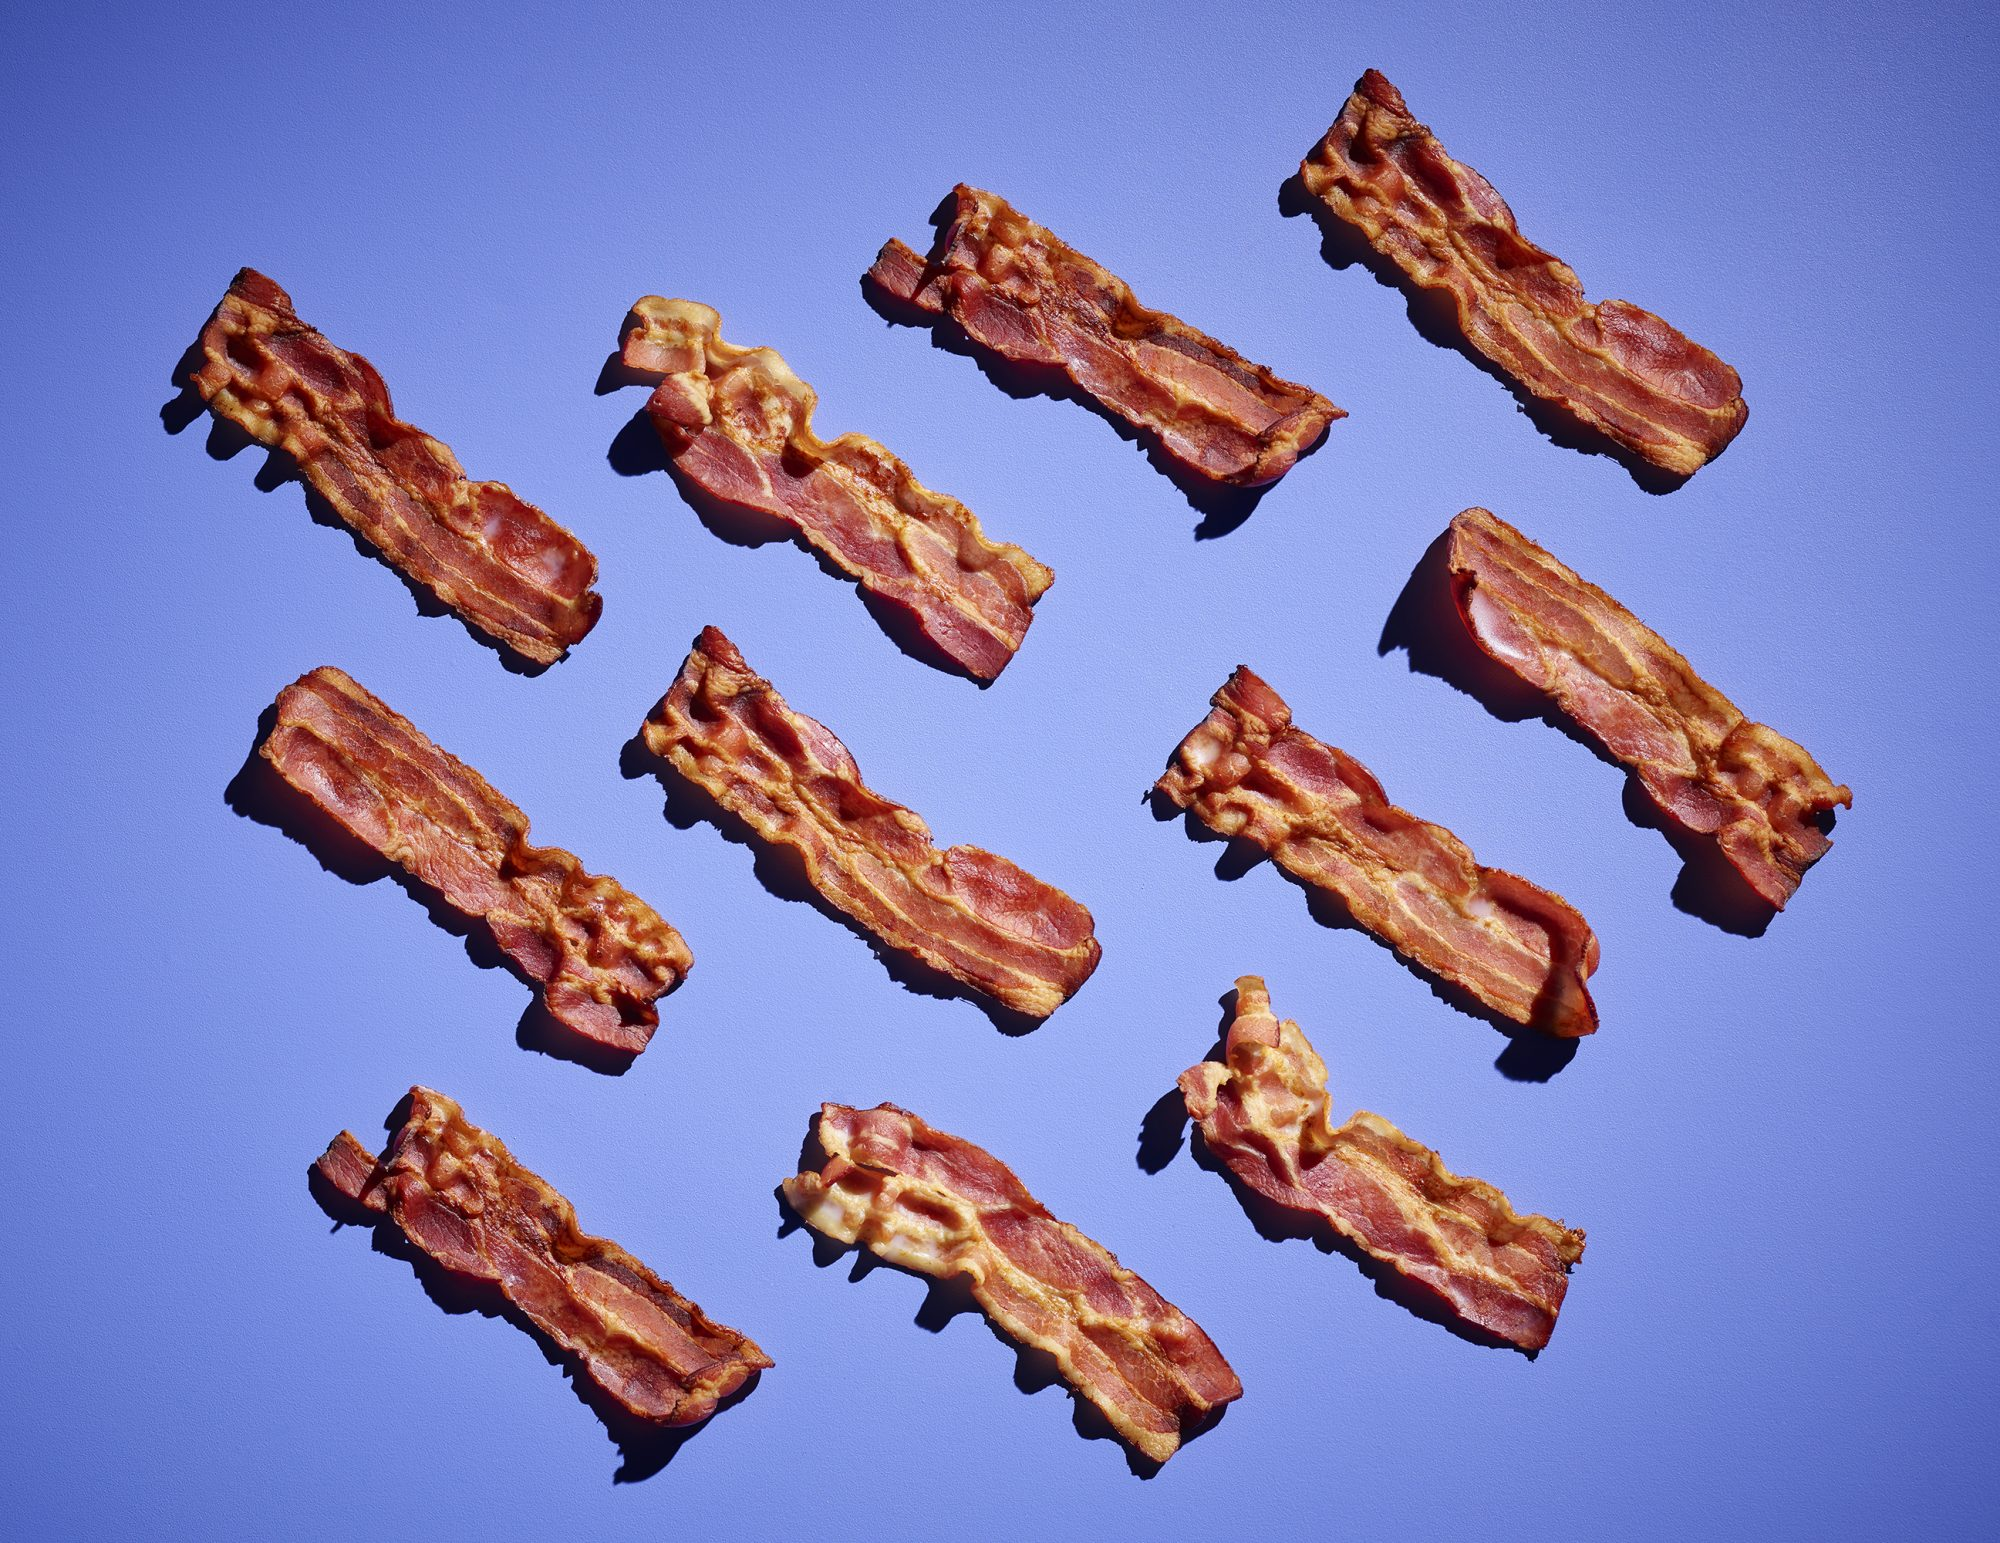 Bacon on a blue background